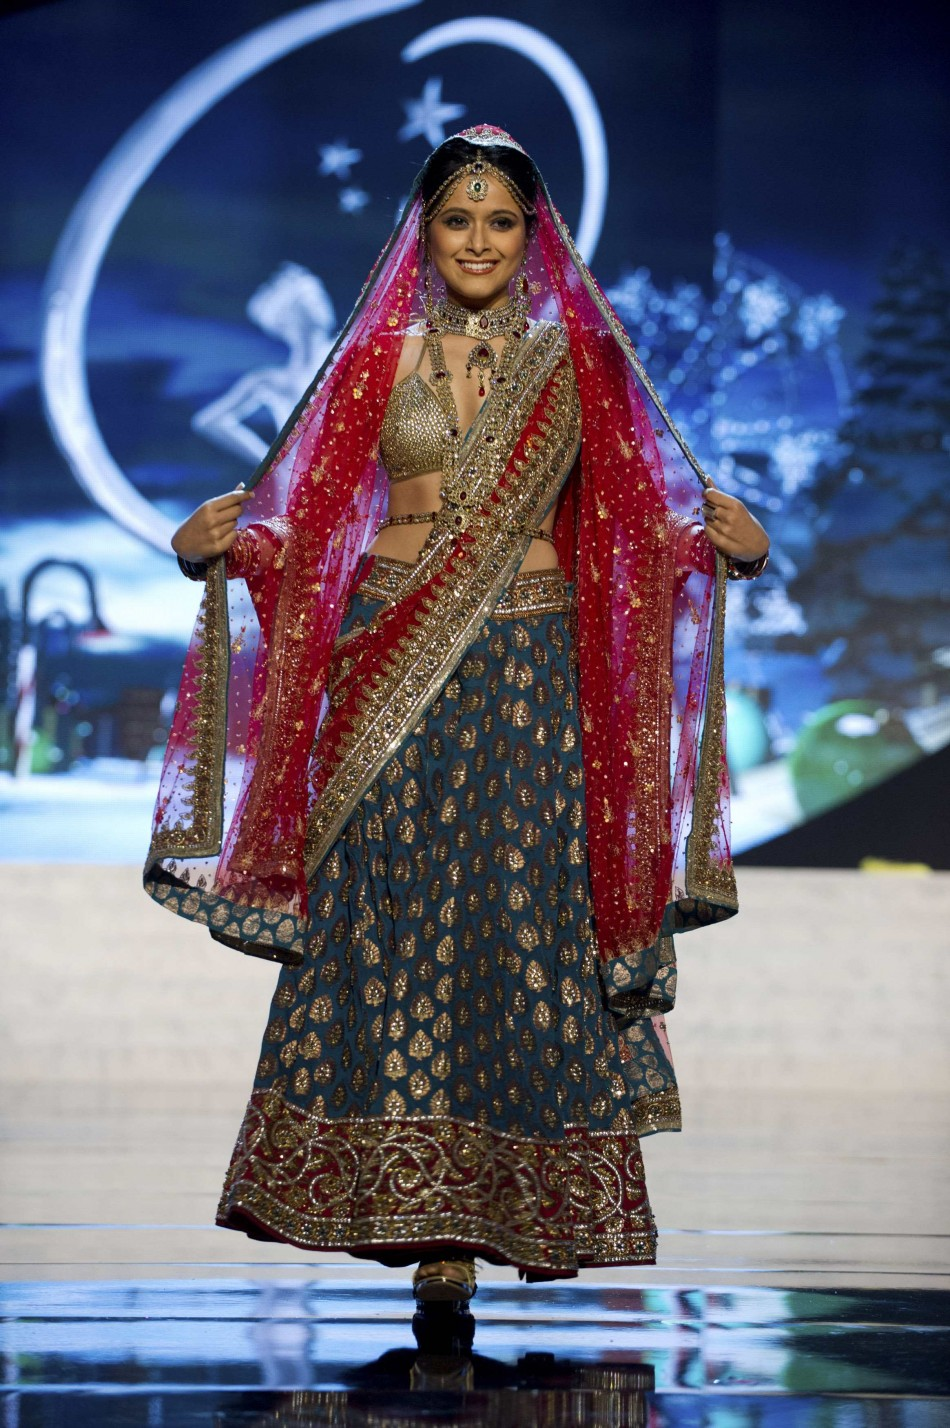 Miss India Ruhi Singh on stage at the 2012 Miss Universe National Costume Show at PH Live in Las Vegas